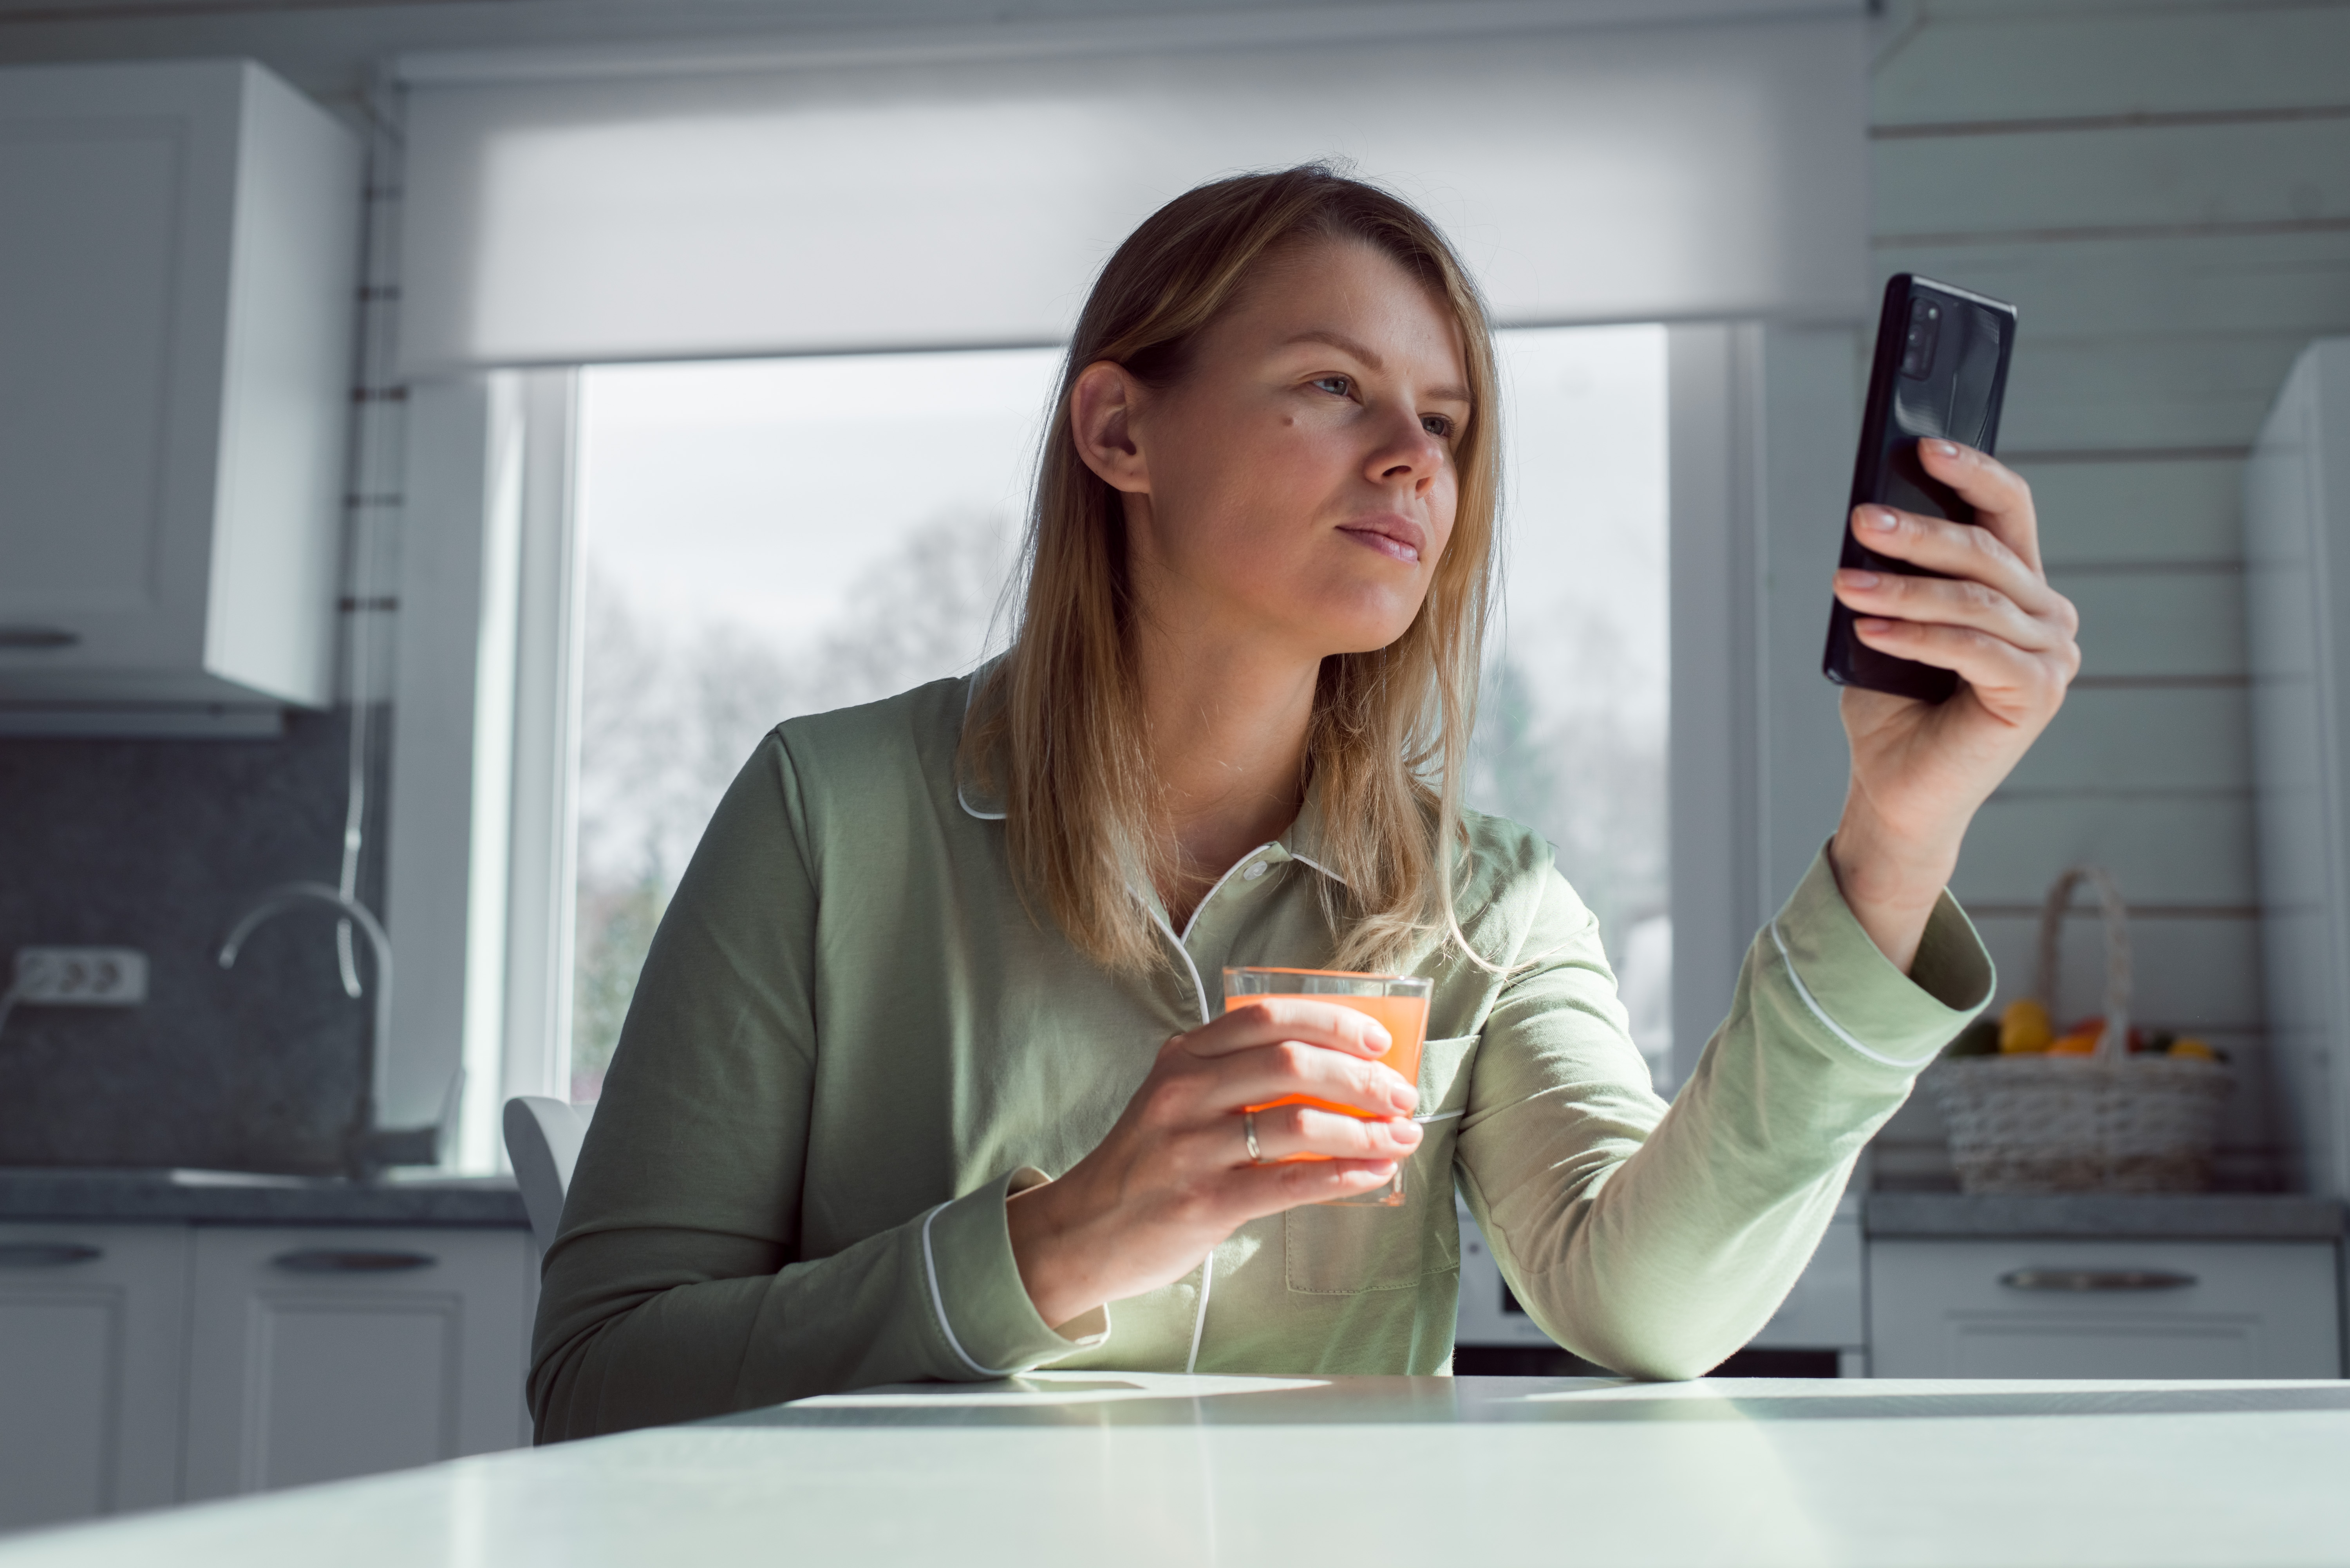 woman-looking-at-her-phone-at-kitchen-counter-in-blouse